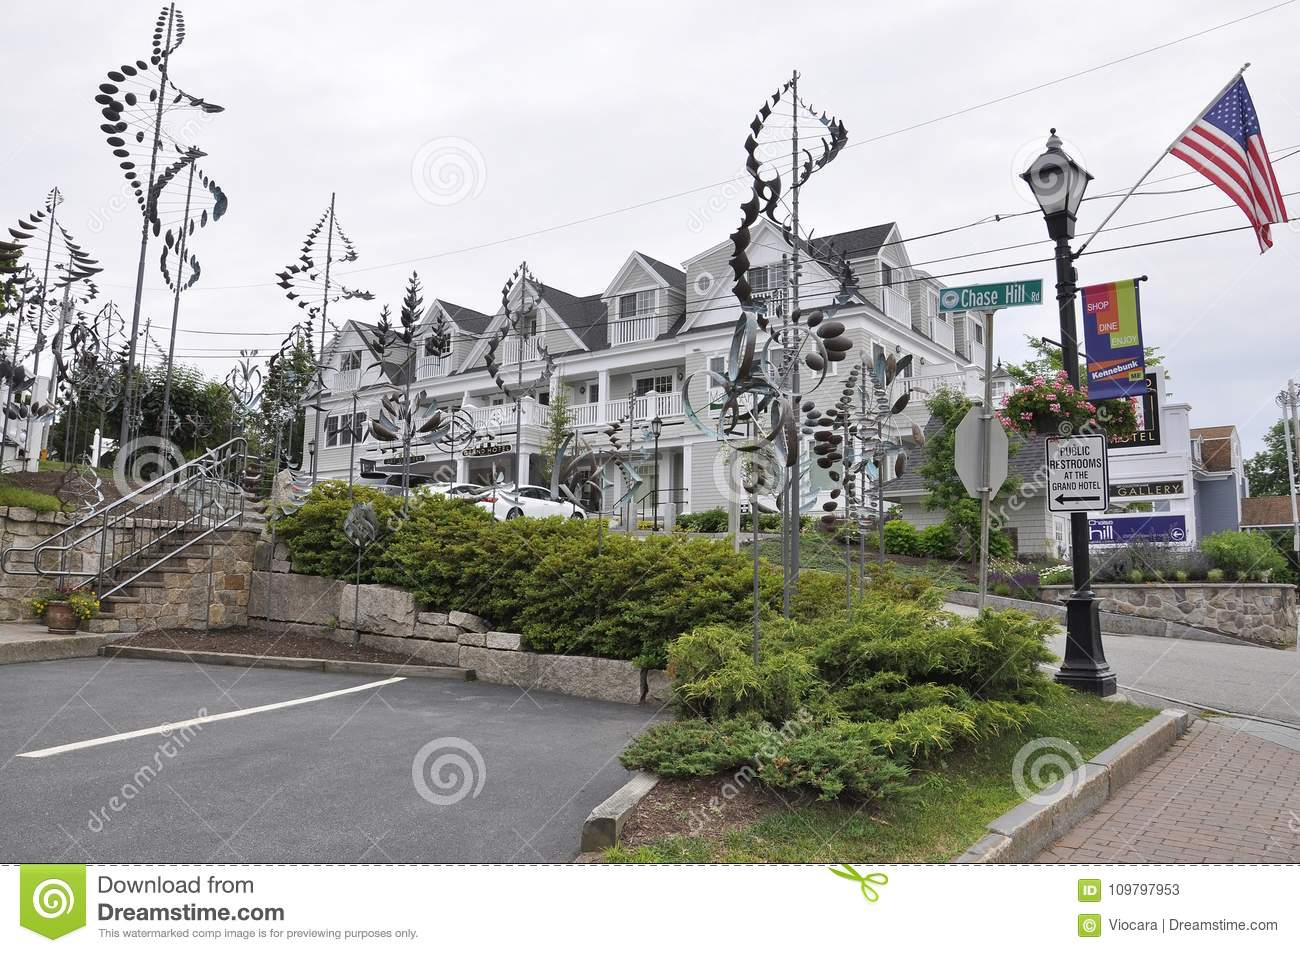 Kennebunkport Maine 30th June Grand Hotel Building From Kennebunkport In Maine State Of Usa Editorial Stock Photo Image Of Grand Accomodation 109797953